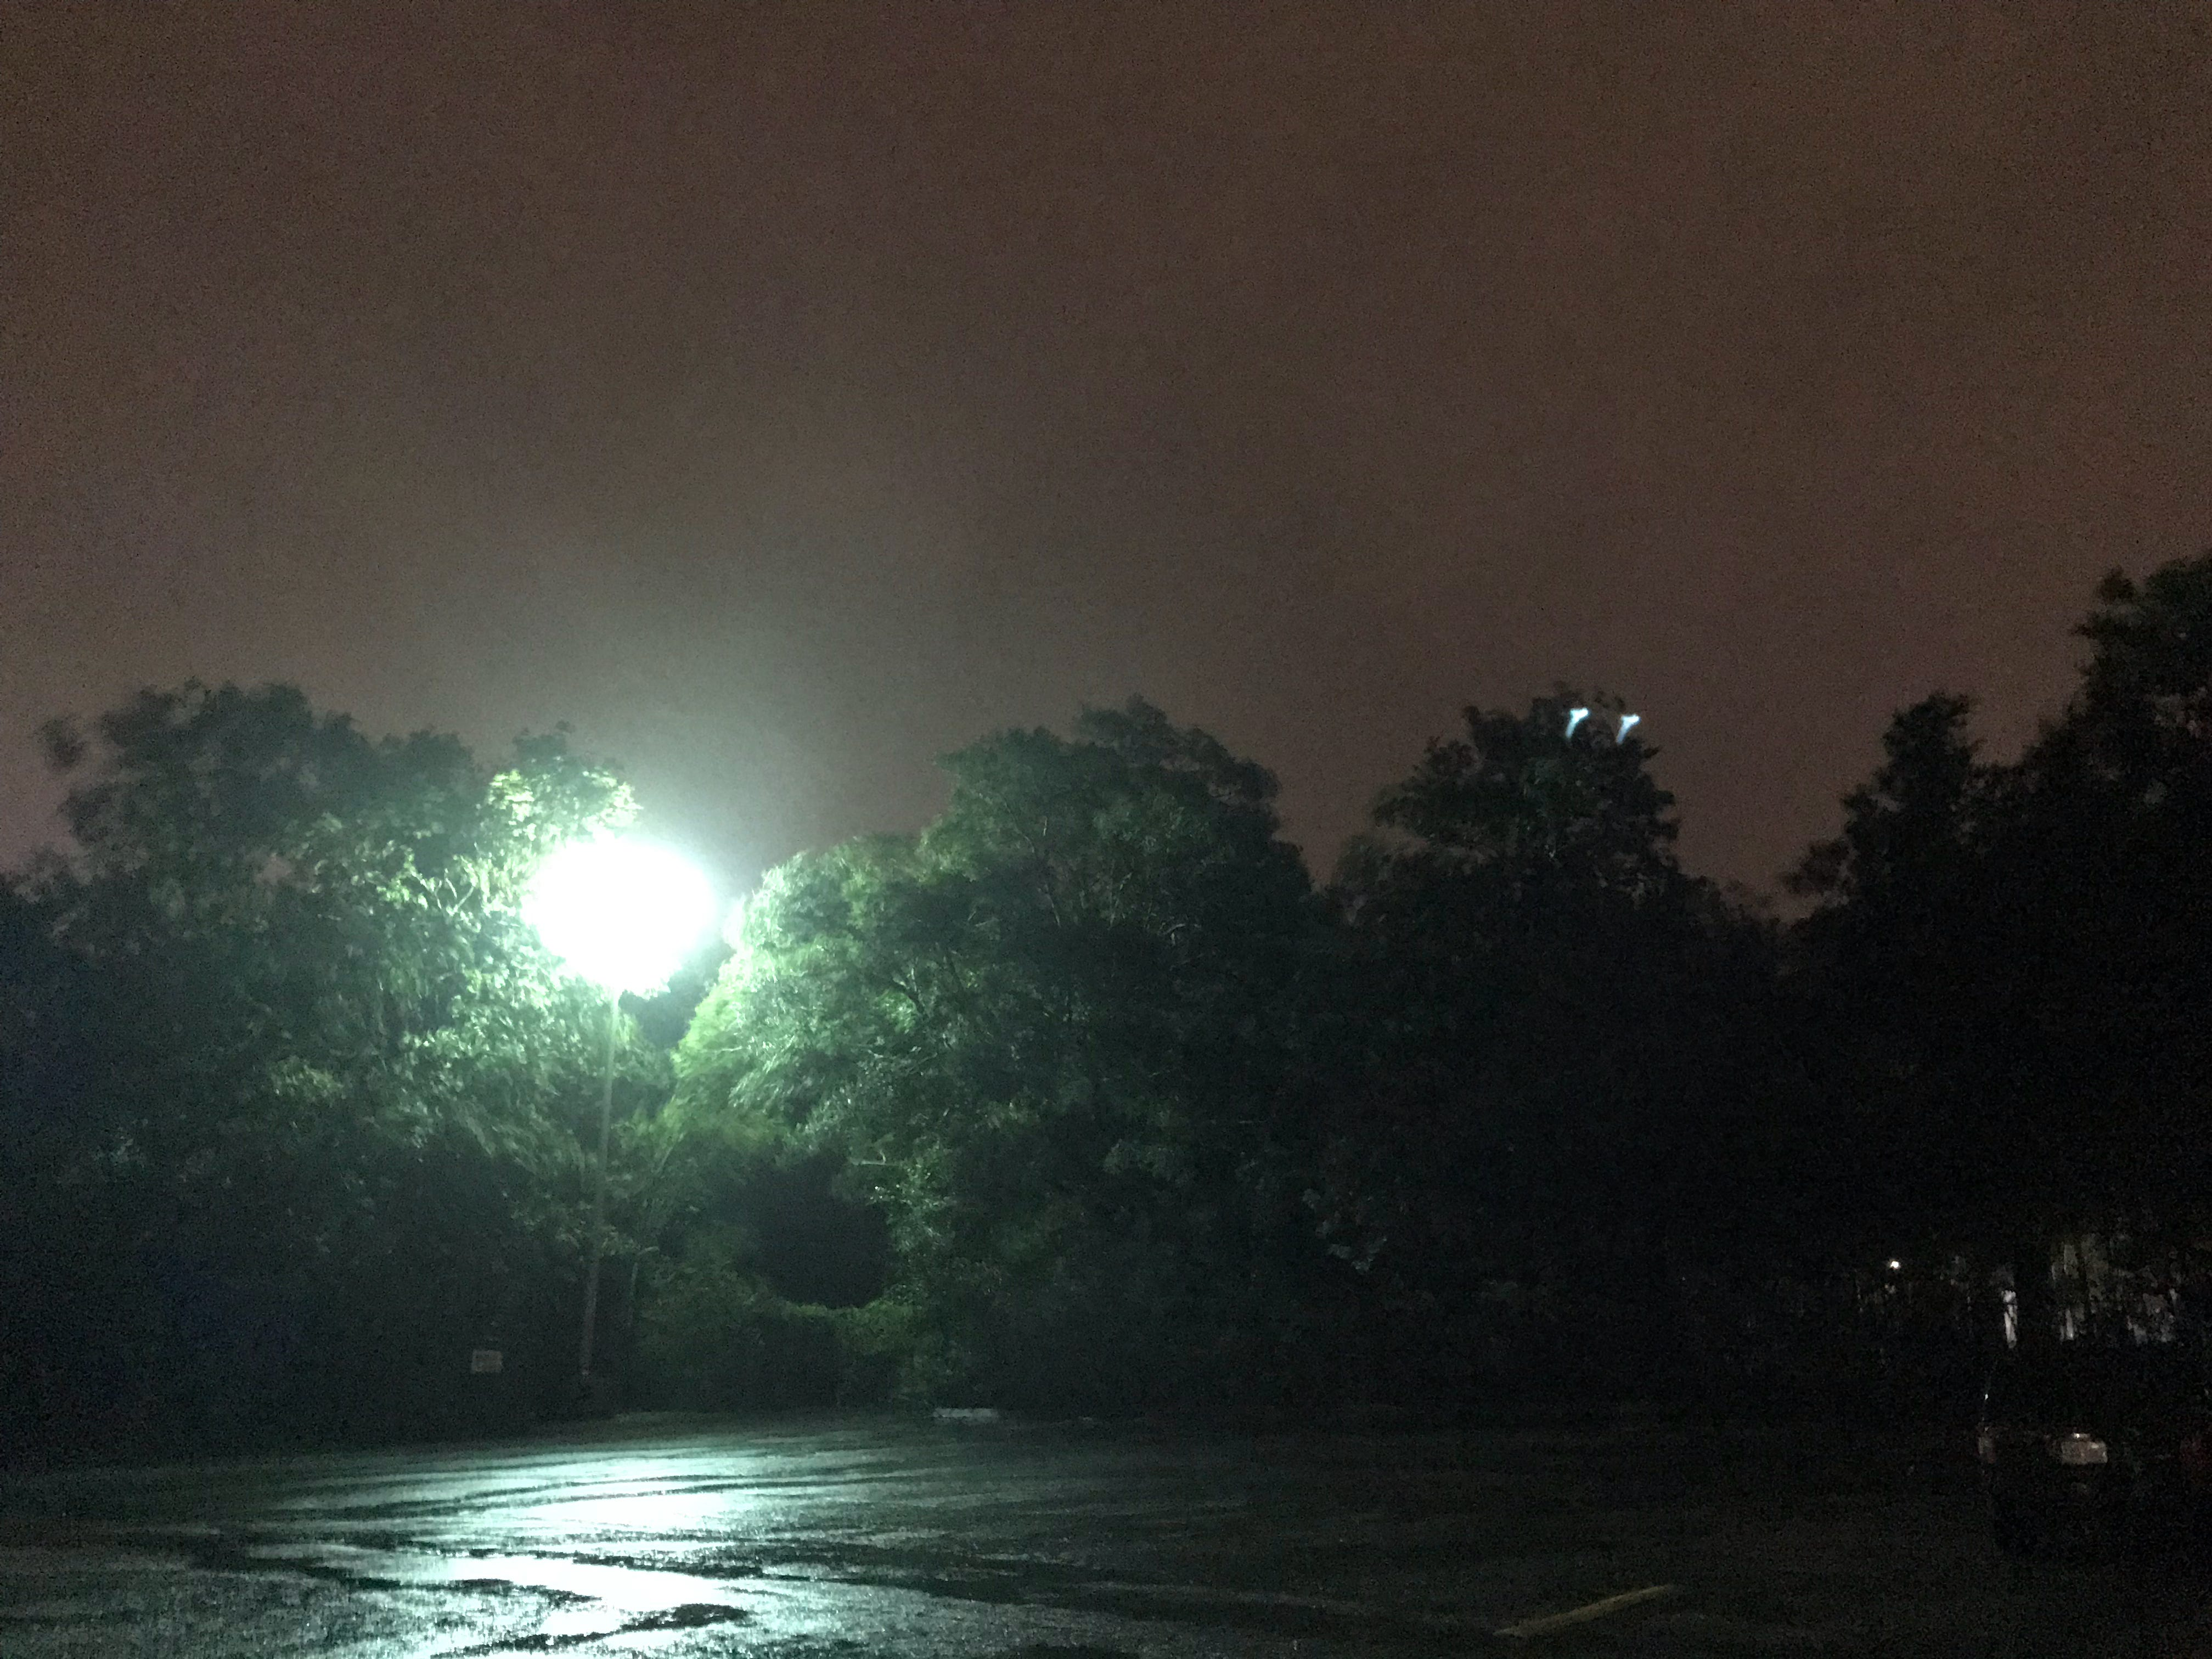 Wind gusts were blowing tree limbs near 17th Steet and Dawson Street in Wilmington around 4:45 a.m. Friday.